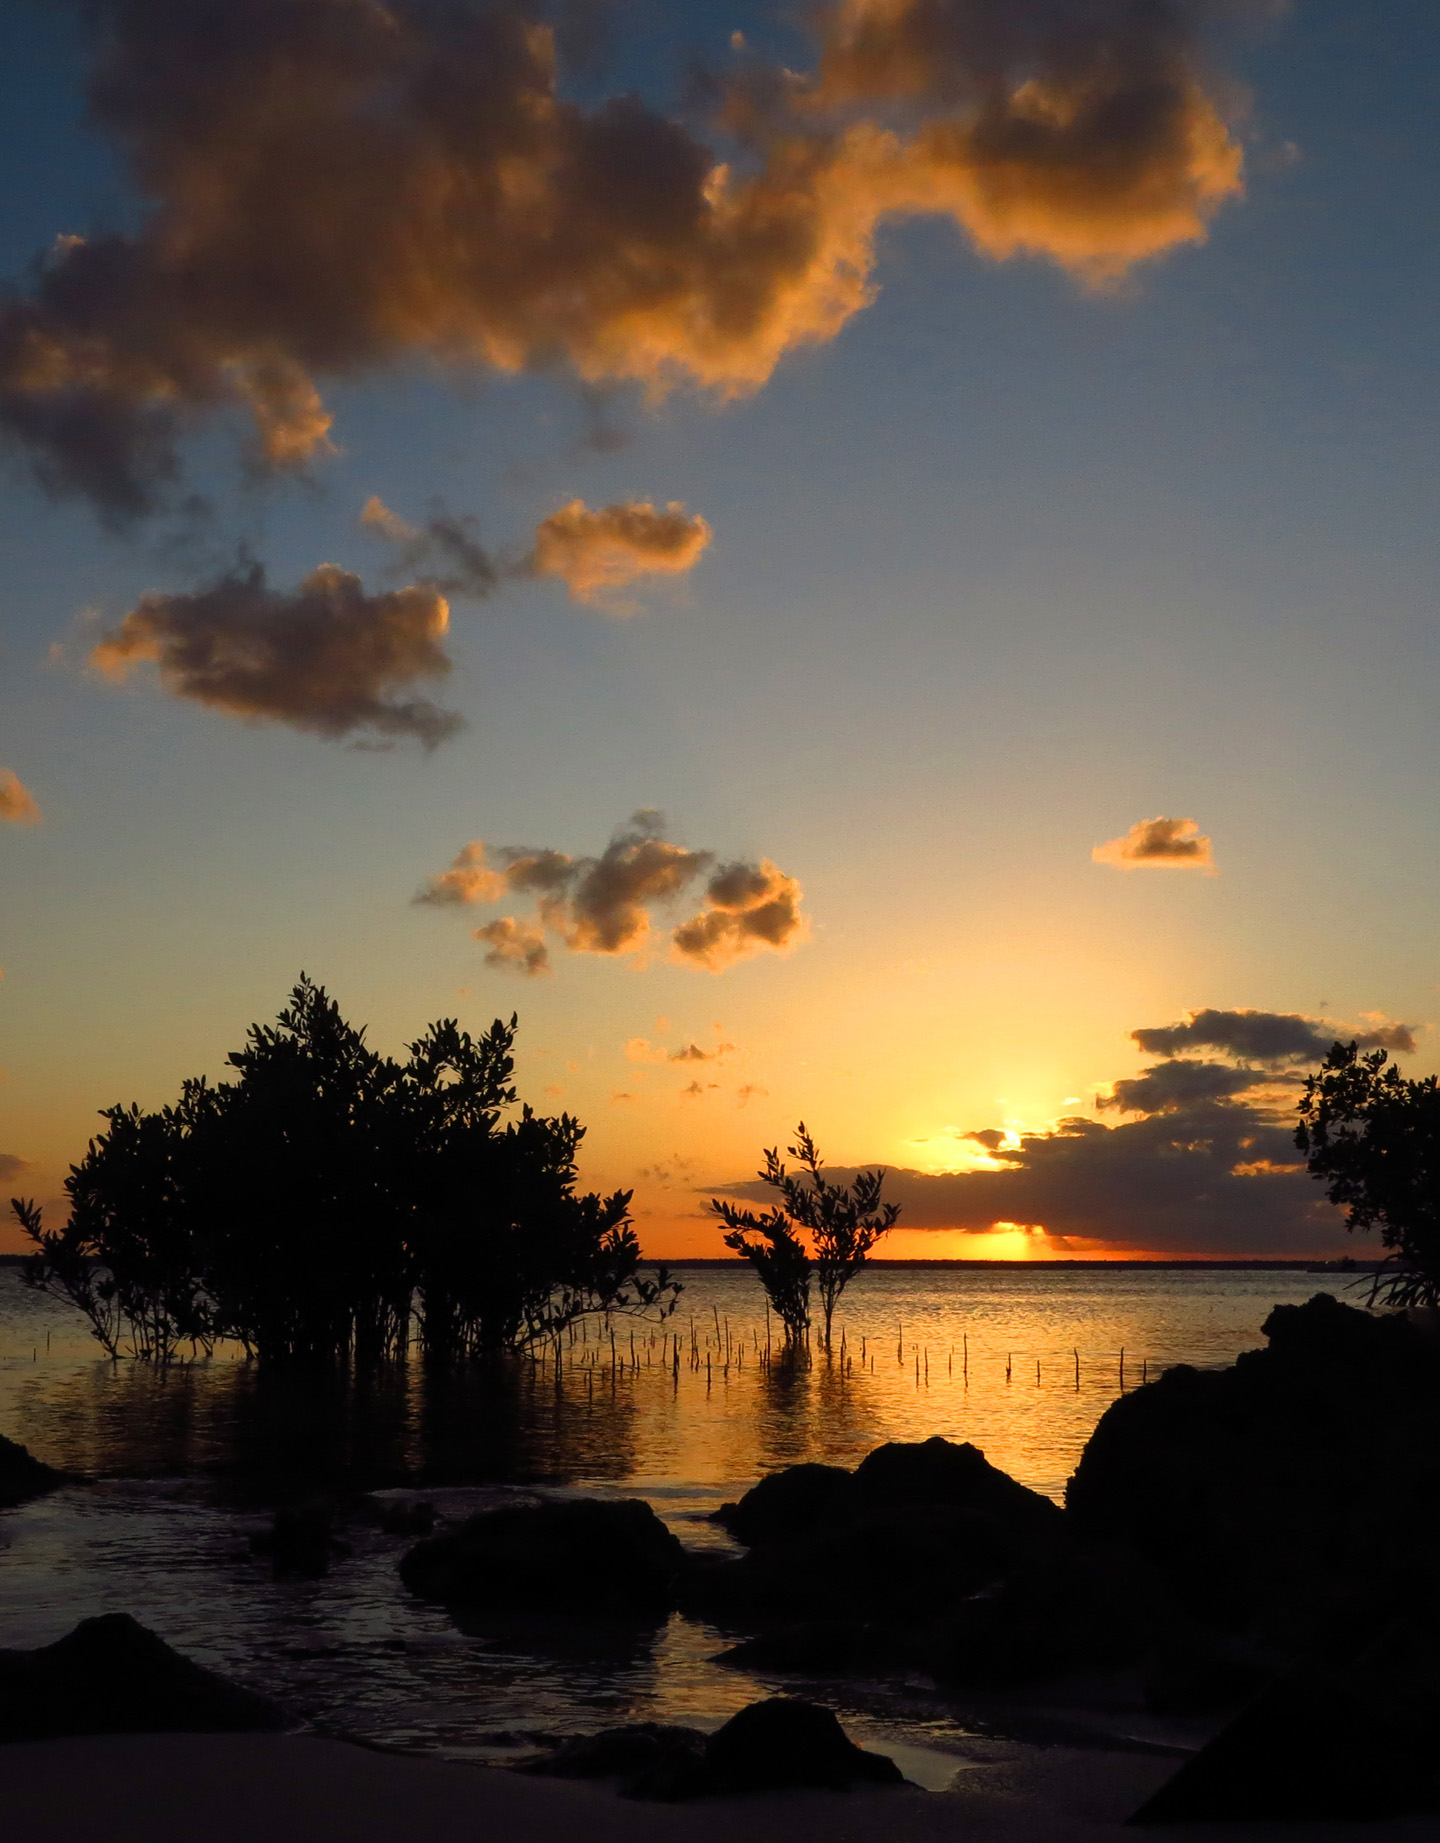 Sunset from the South Beach, Green Turtle Cay, Bahamas